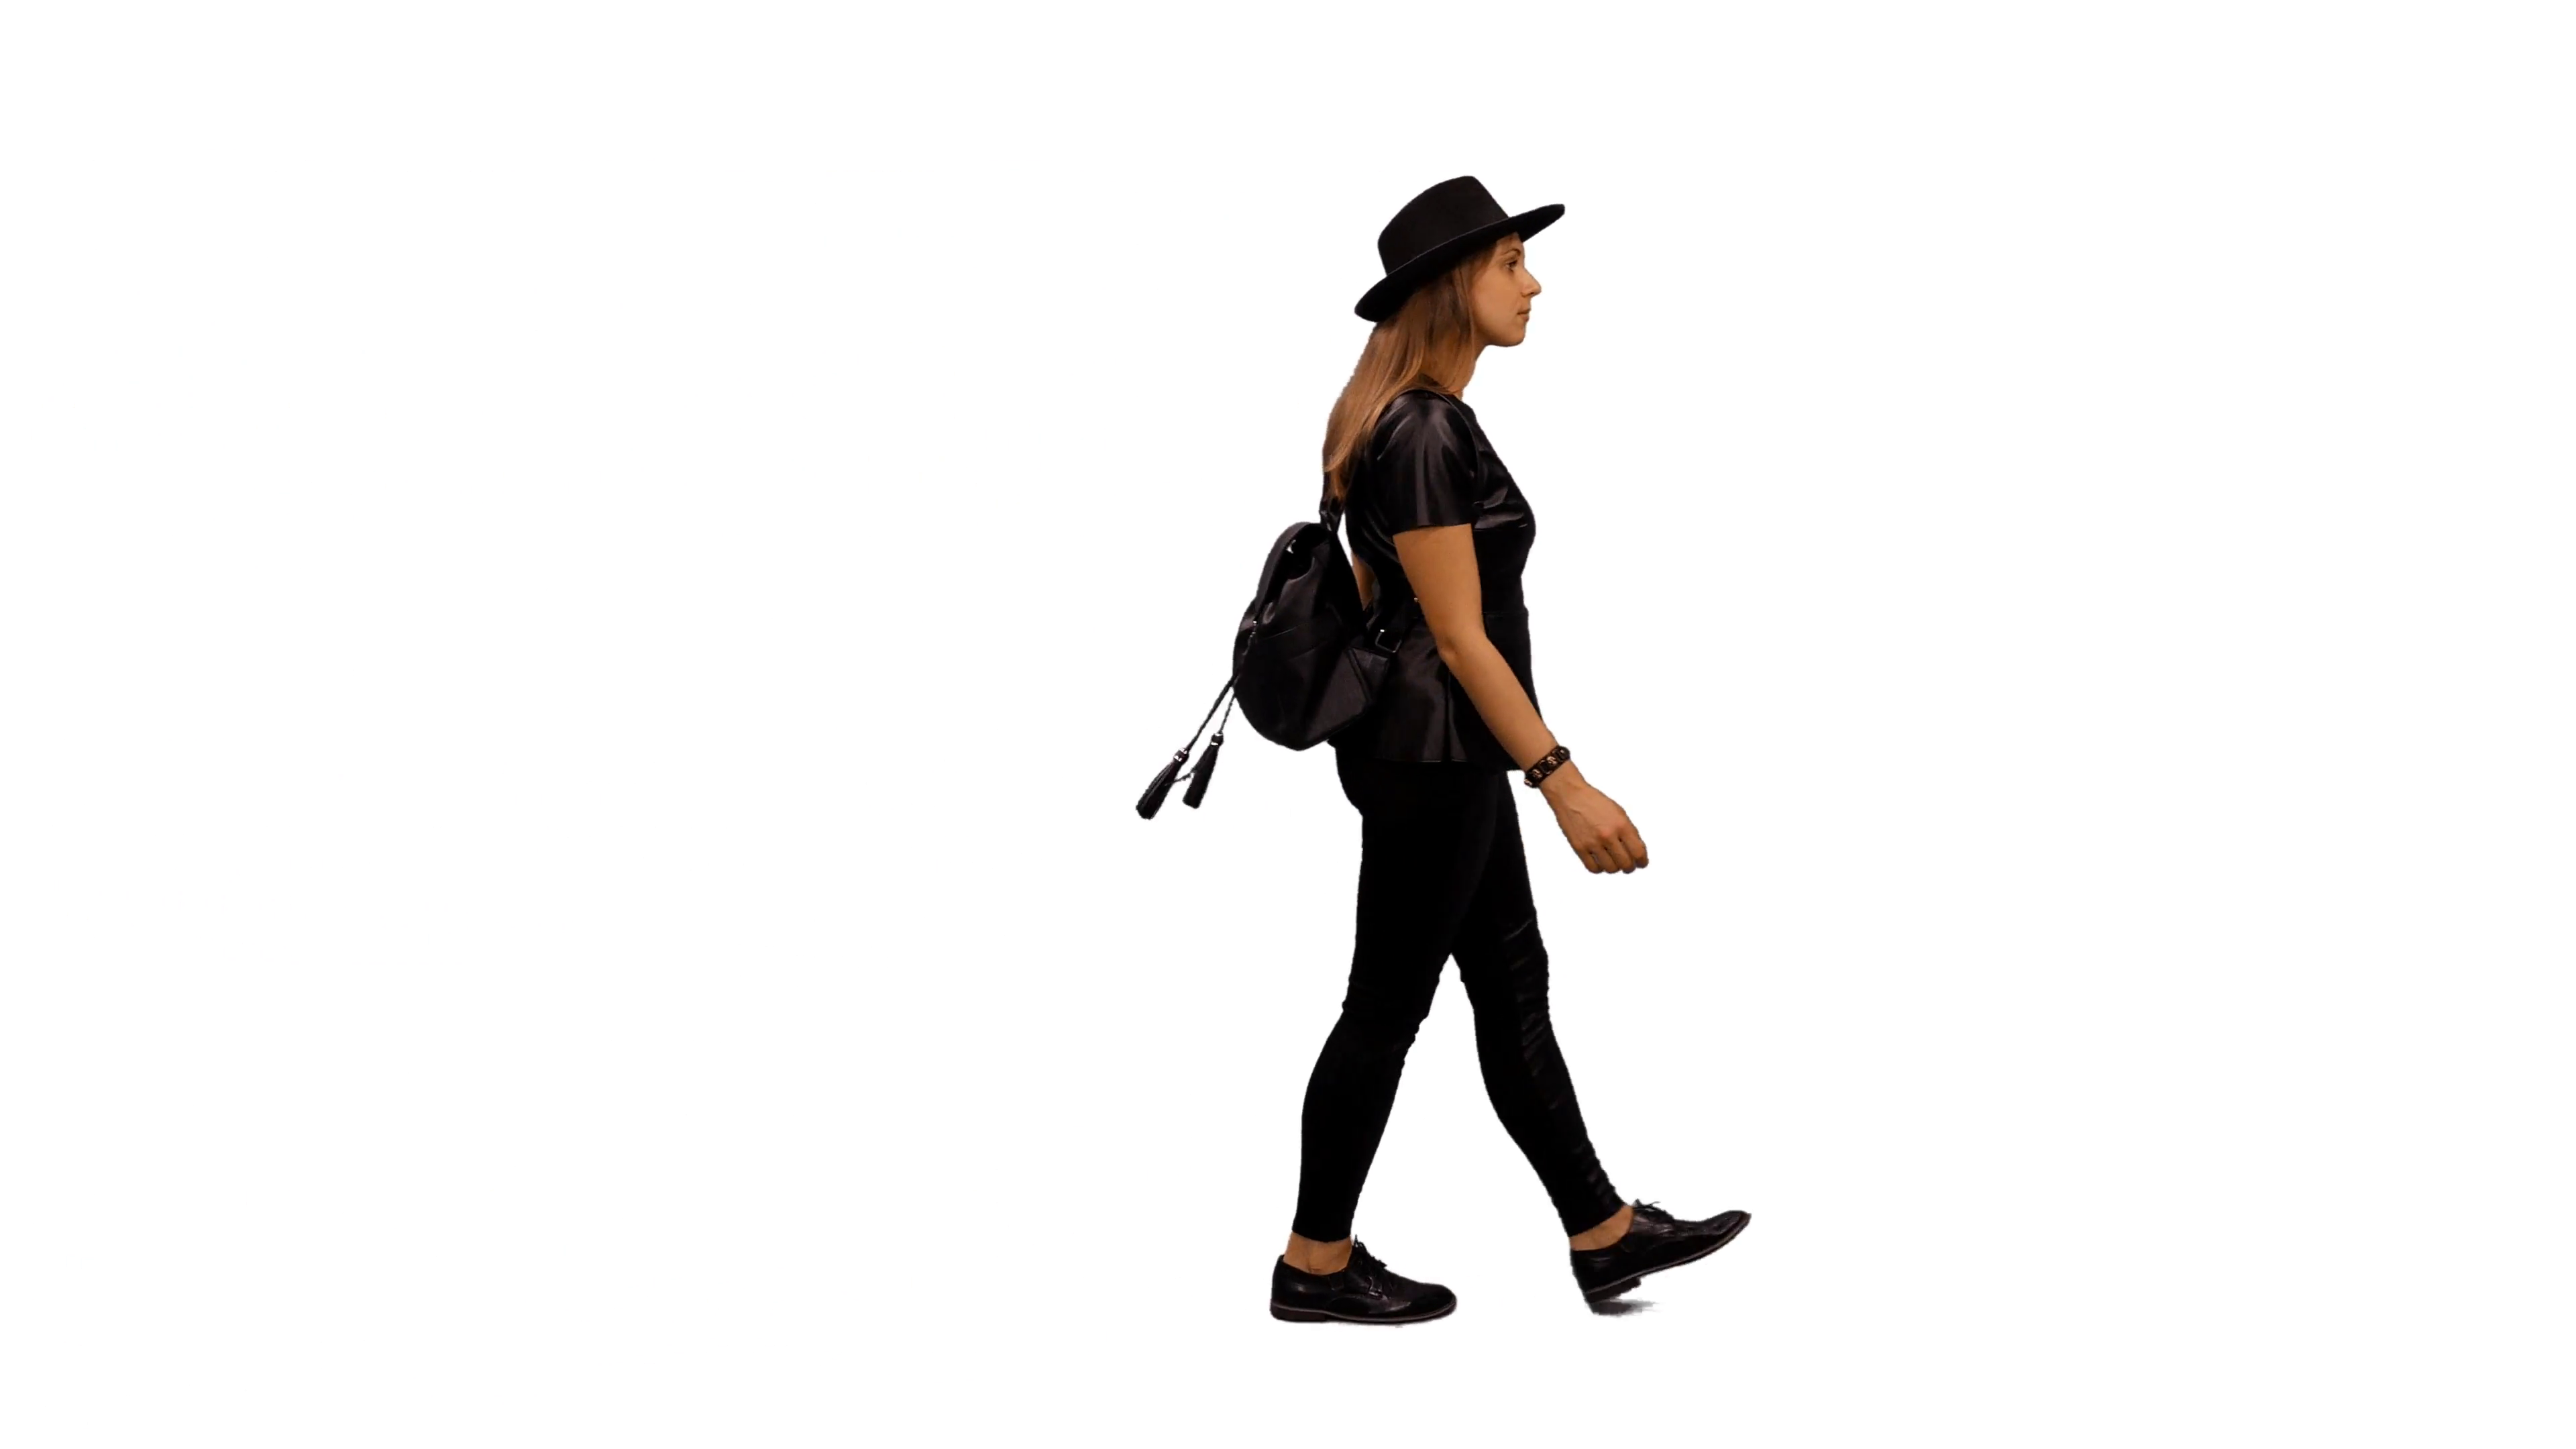 3840x2160 Young Woman In Leather Jacket Walking, Side View, Full Hd Shot